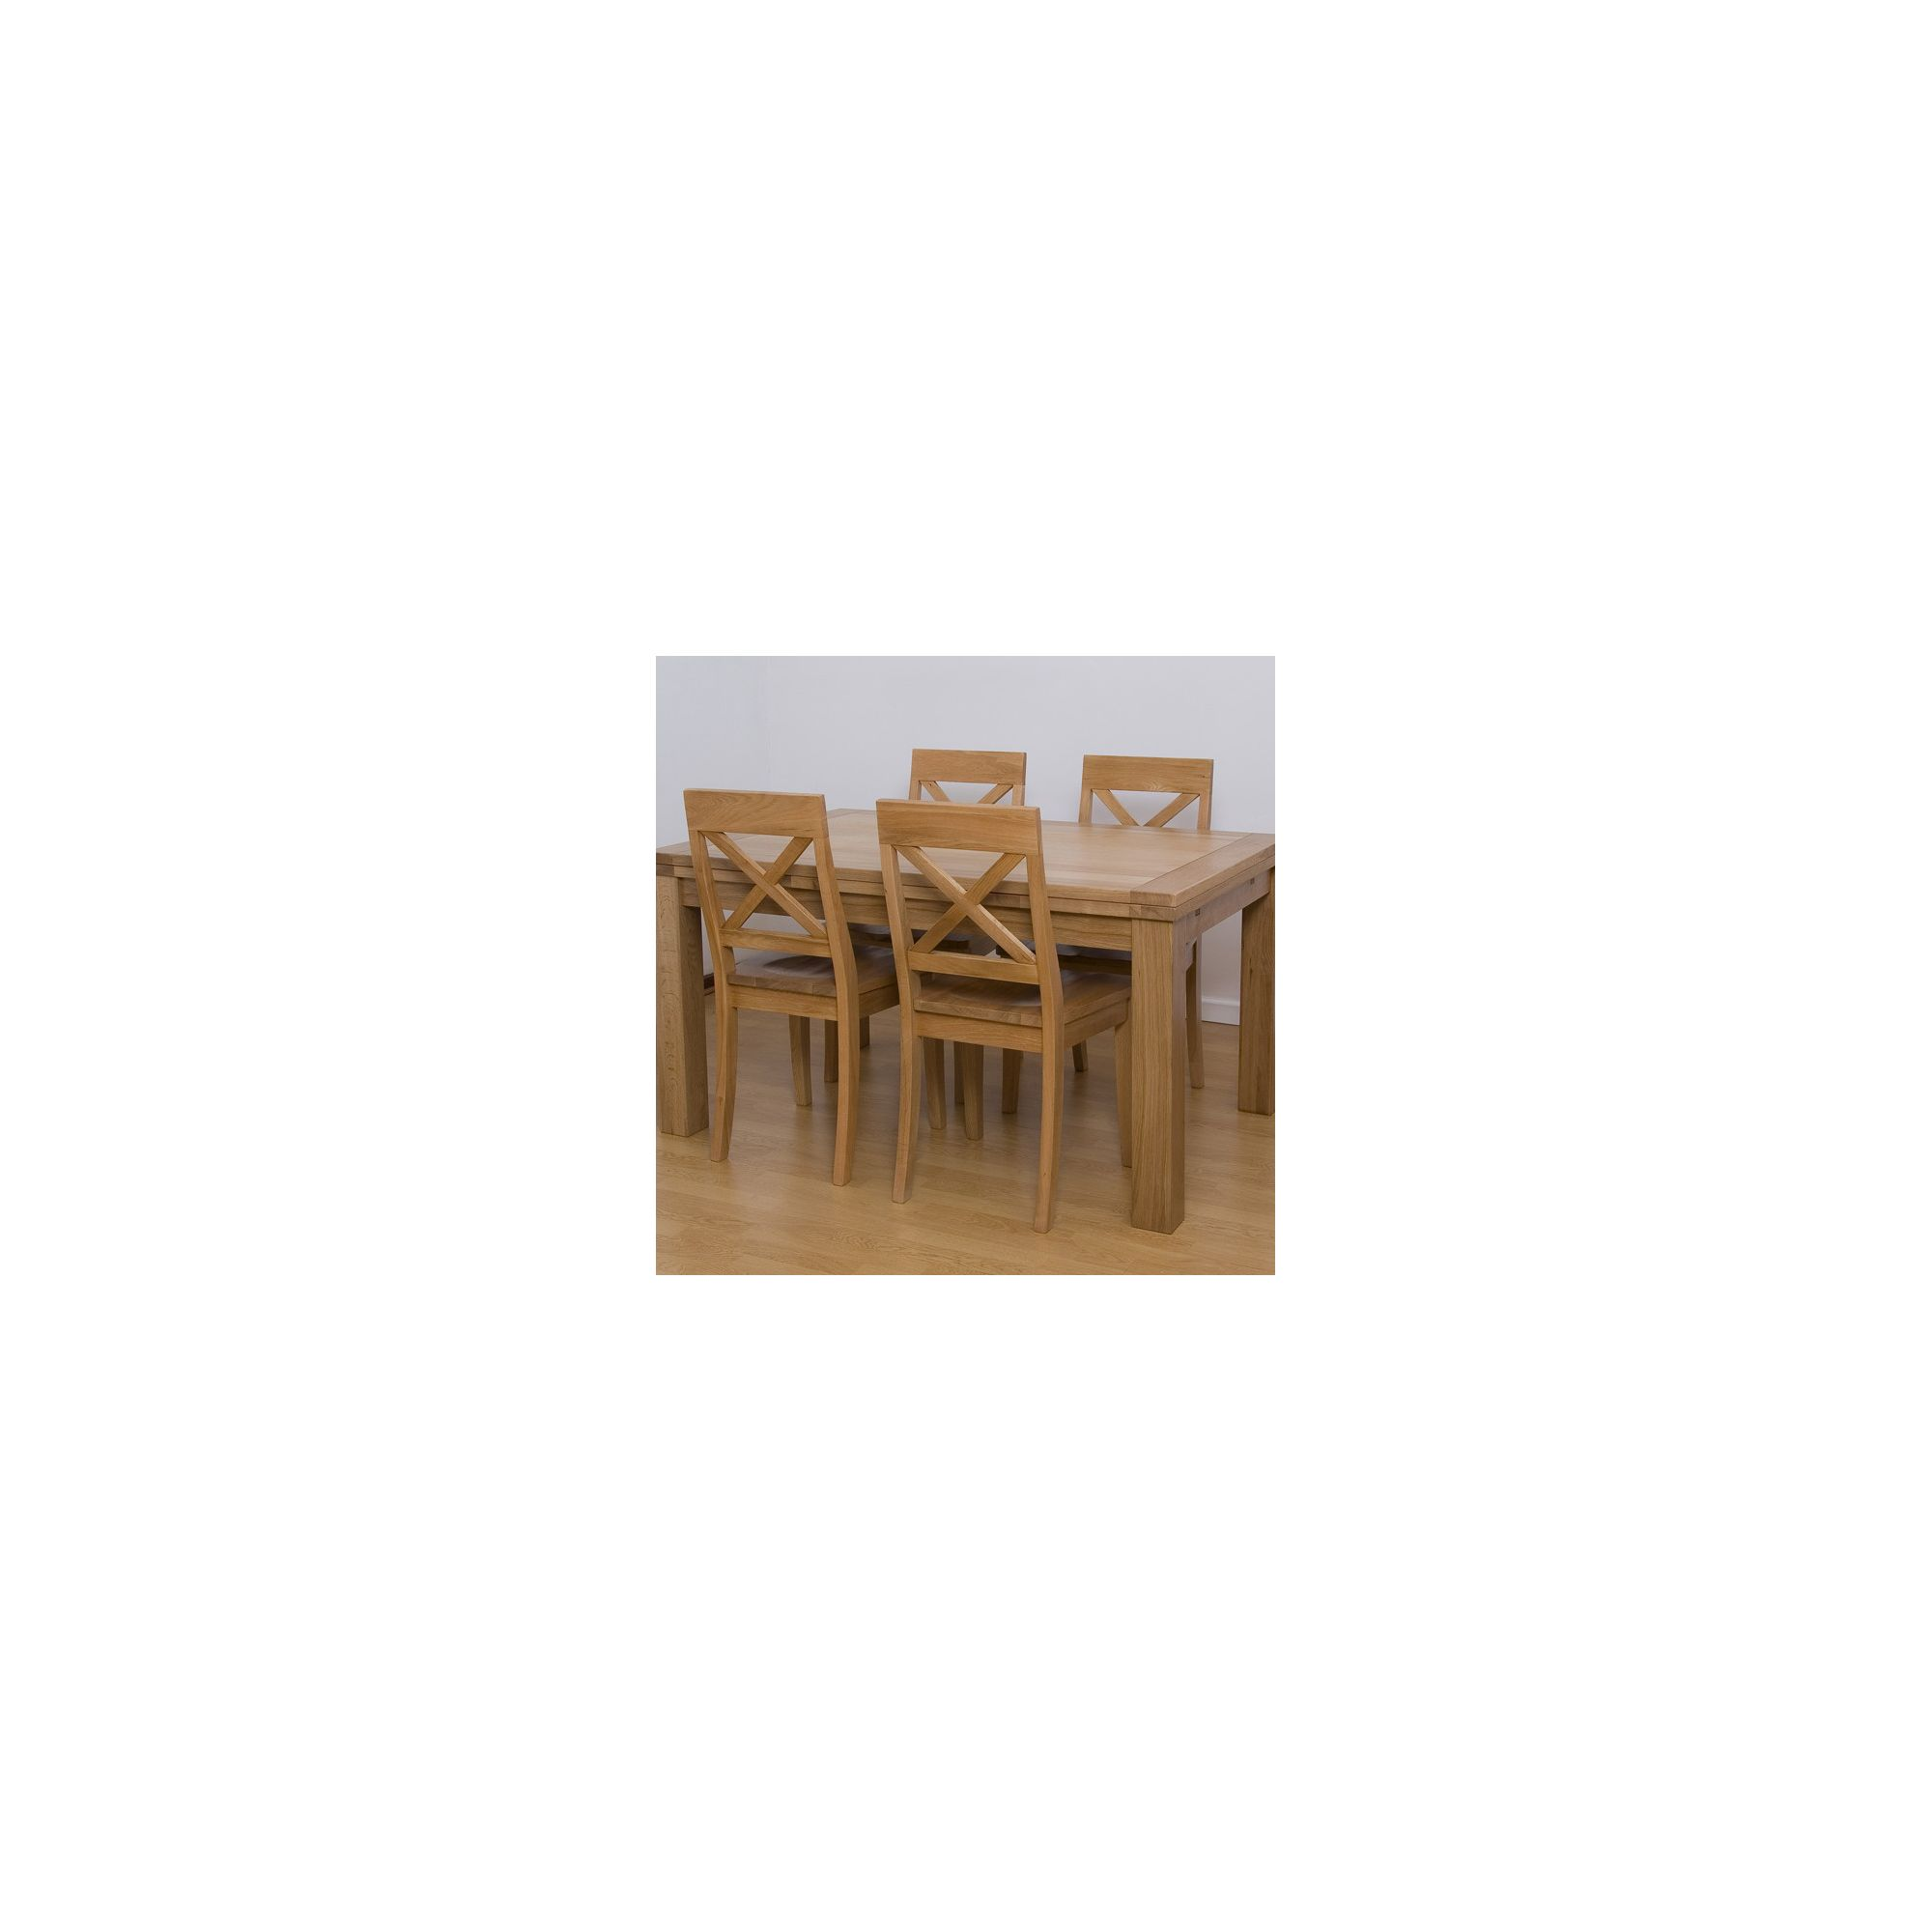 G&P Furniture 5 Piece Rectangular Extending Oak Dining Set - 76.2cm H x 140cm - 230cm W x 90cm D at Tesco Direct